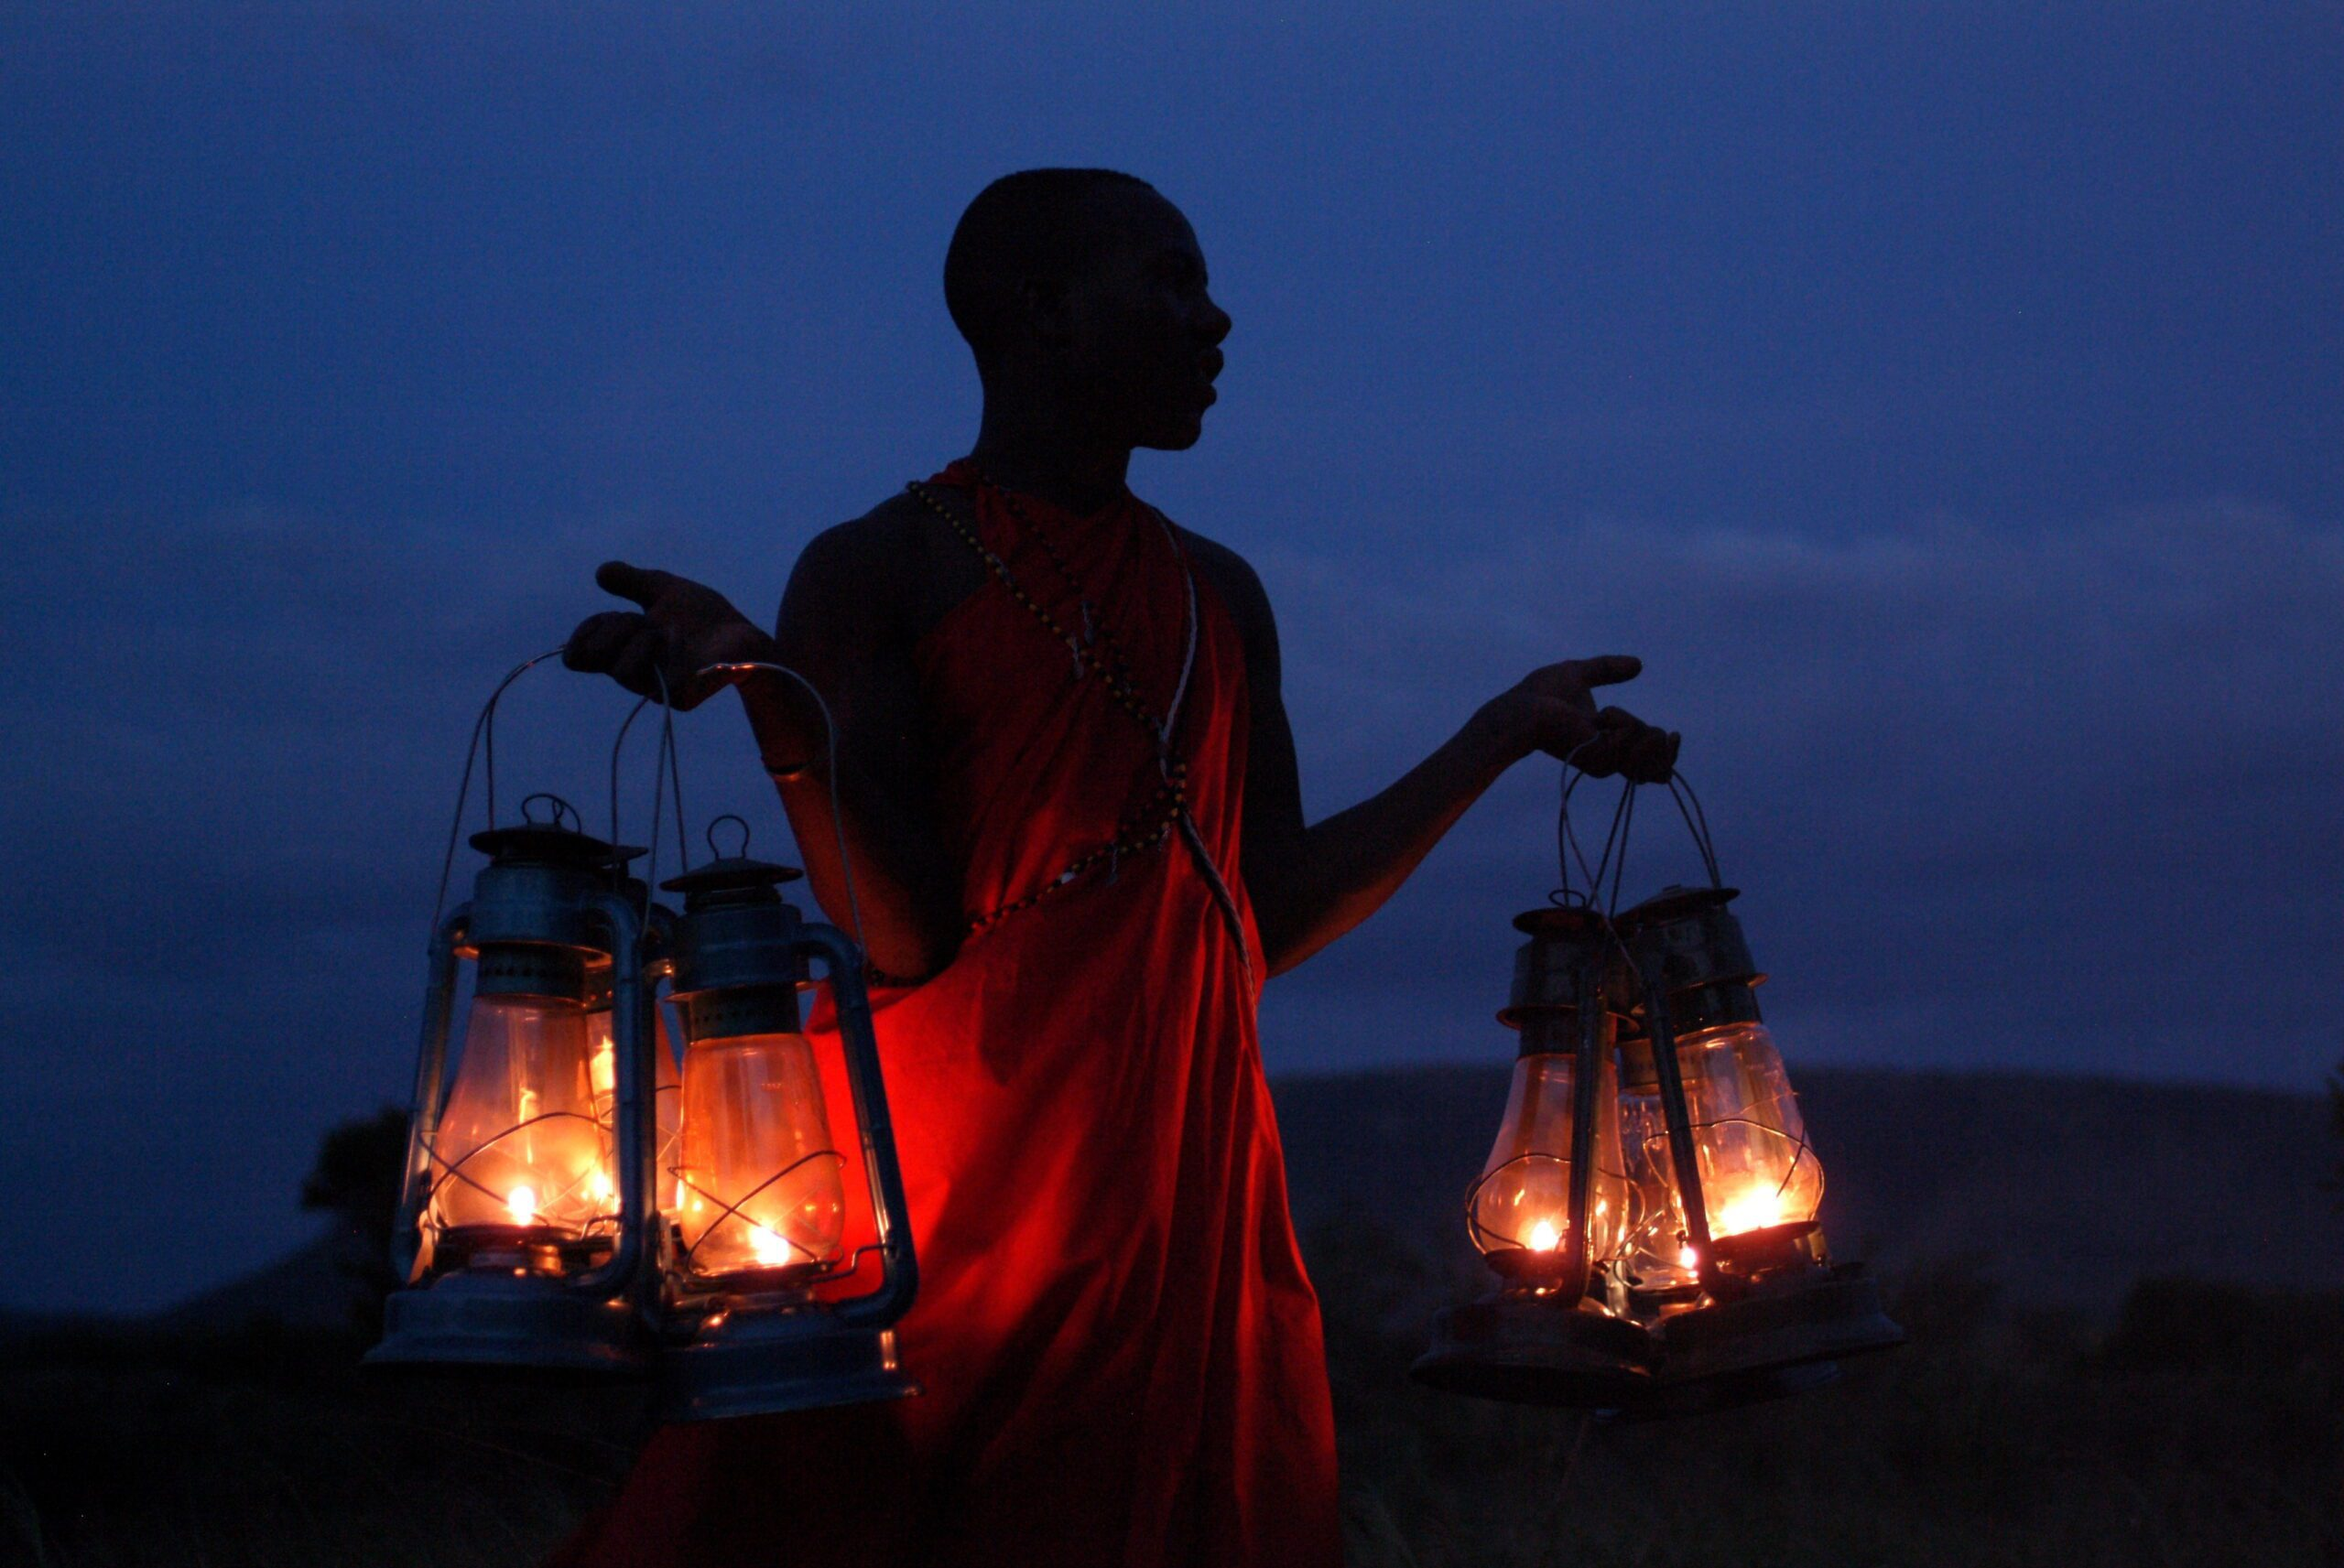 masai warrior carrying lanterns at night seen on our adventure Kenya safari